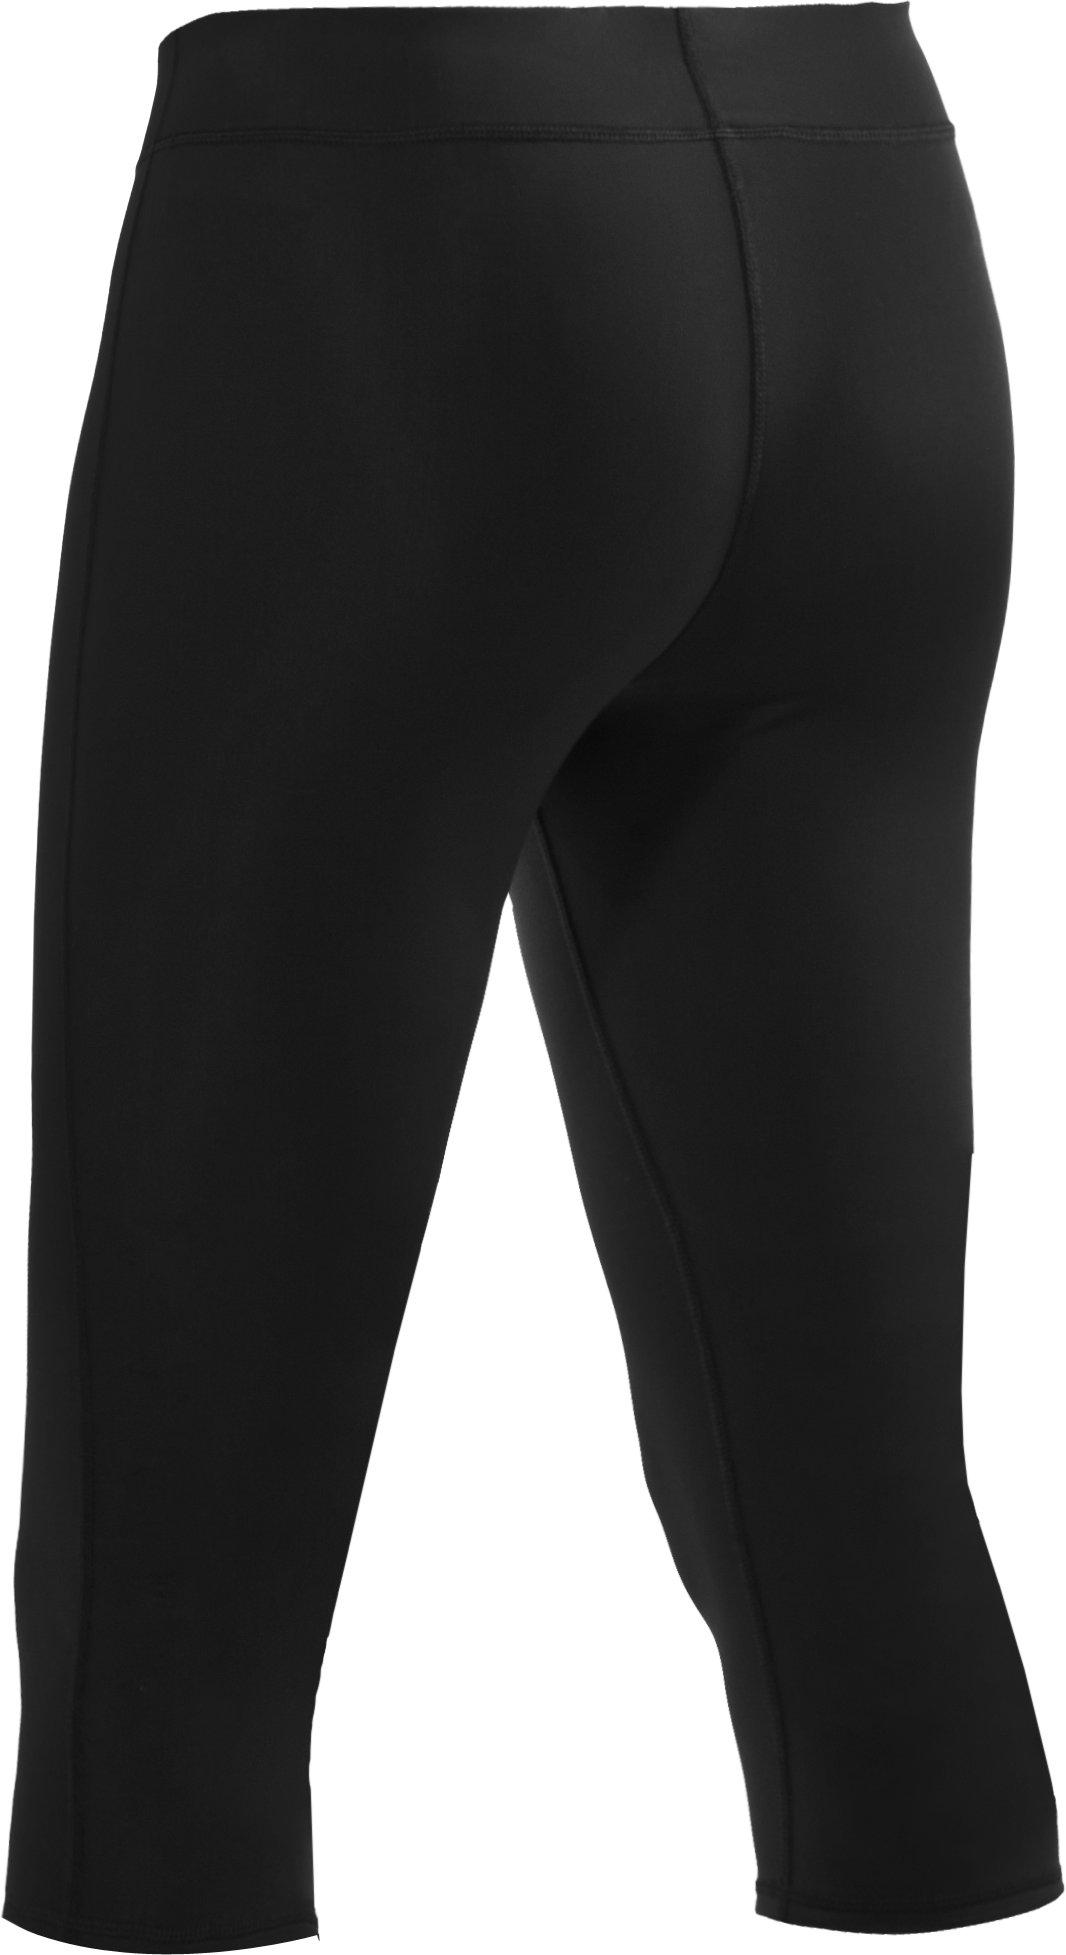 "Women's HeatGear® Squat 15"" Capri, Carbon Heather"